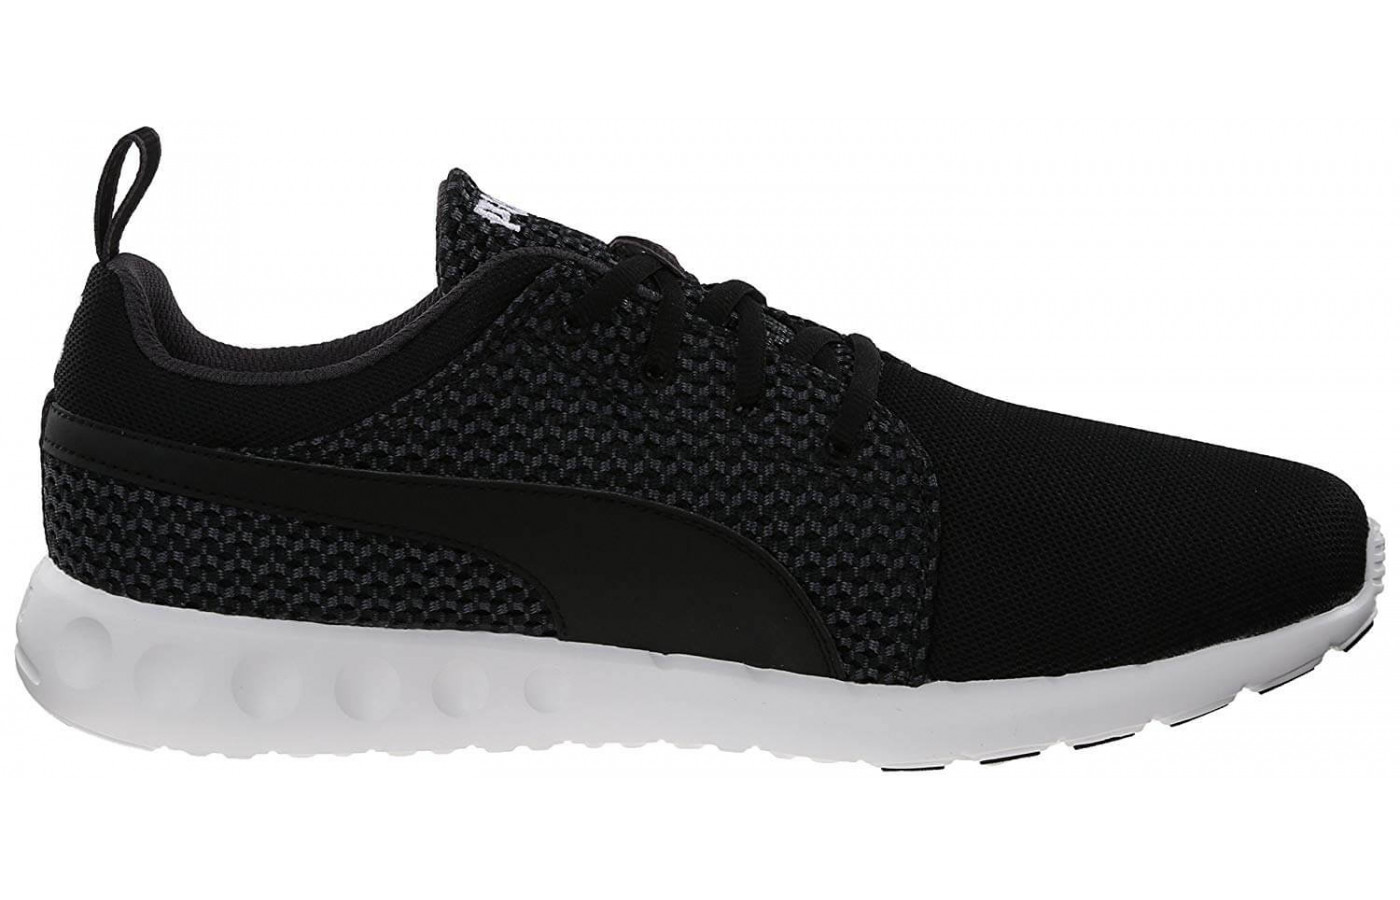 The Puma Carson Runner Knit is lightweight